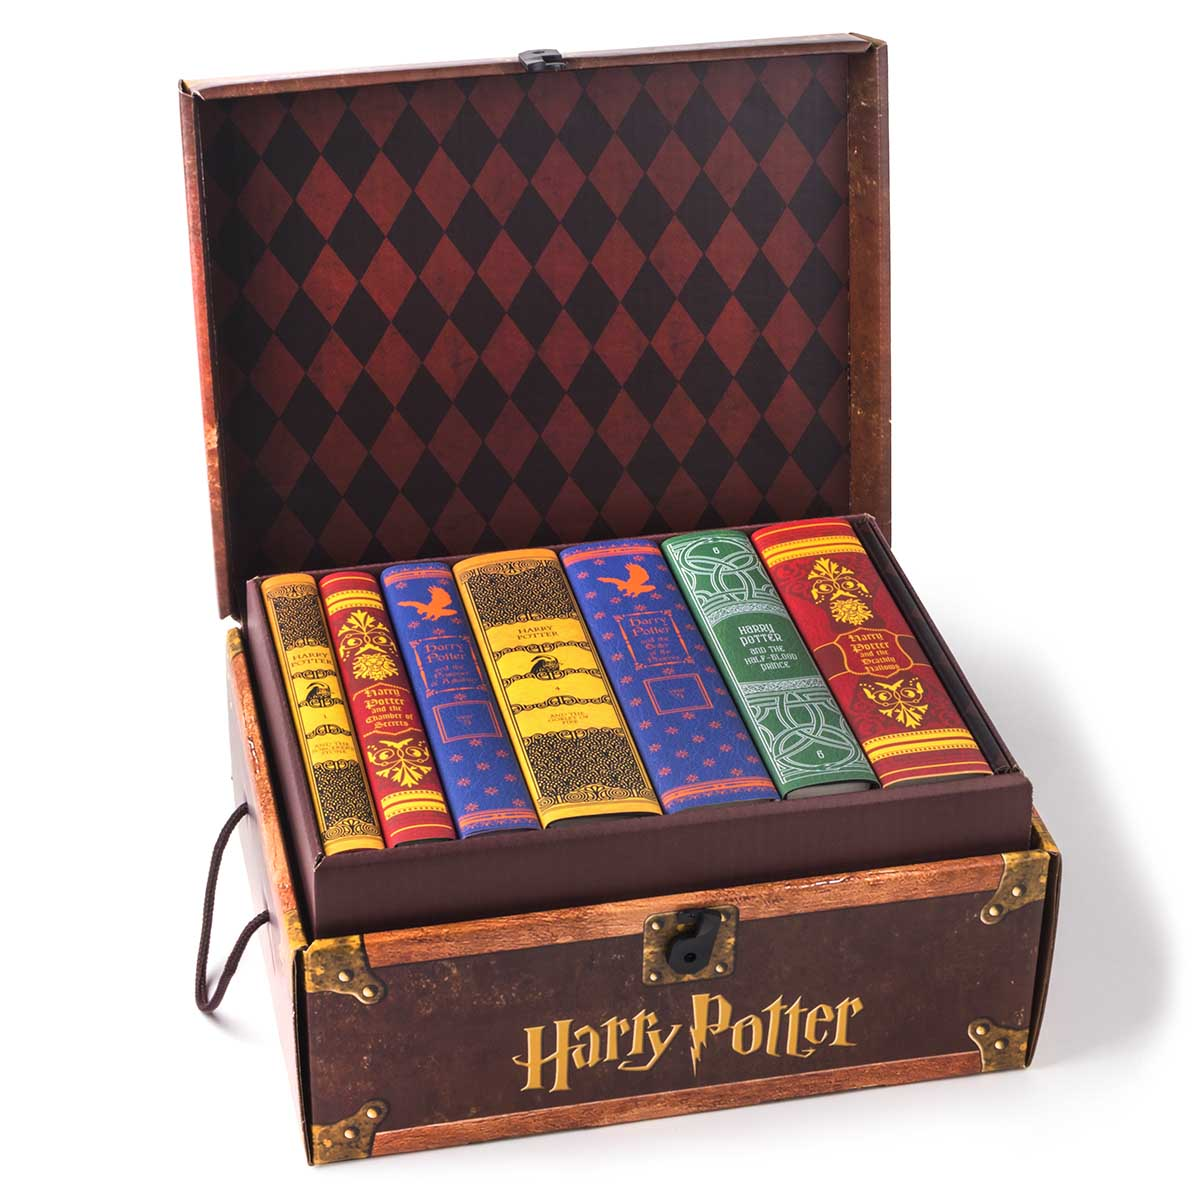 A box of the Harry Potter novels written by J.K. Rowling.